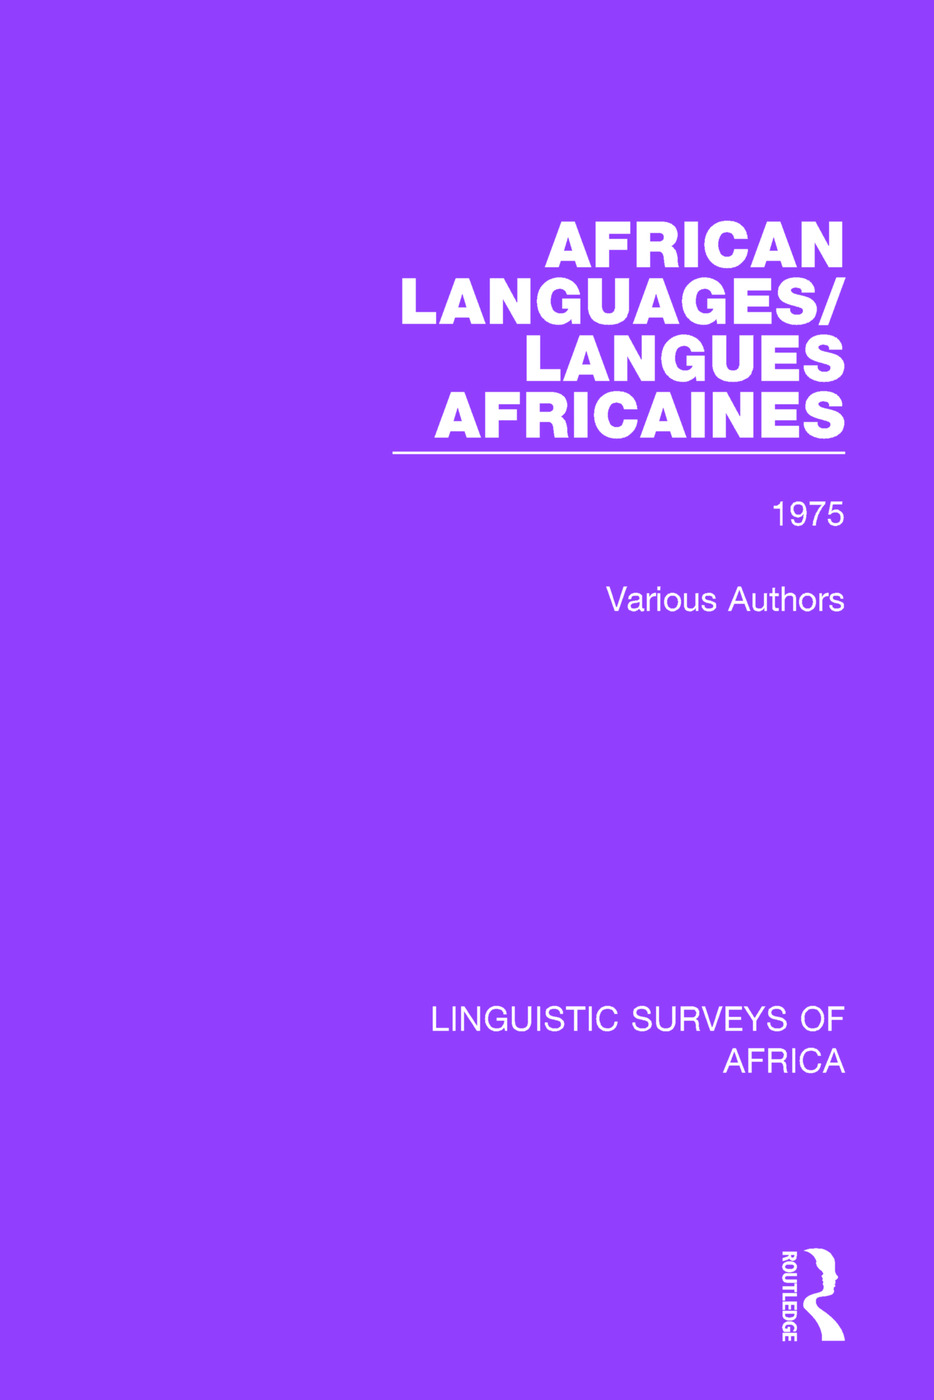 African Languages/Langues Africaines